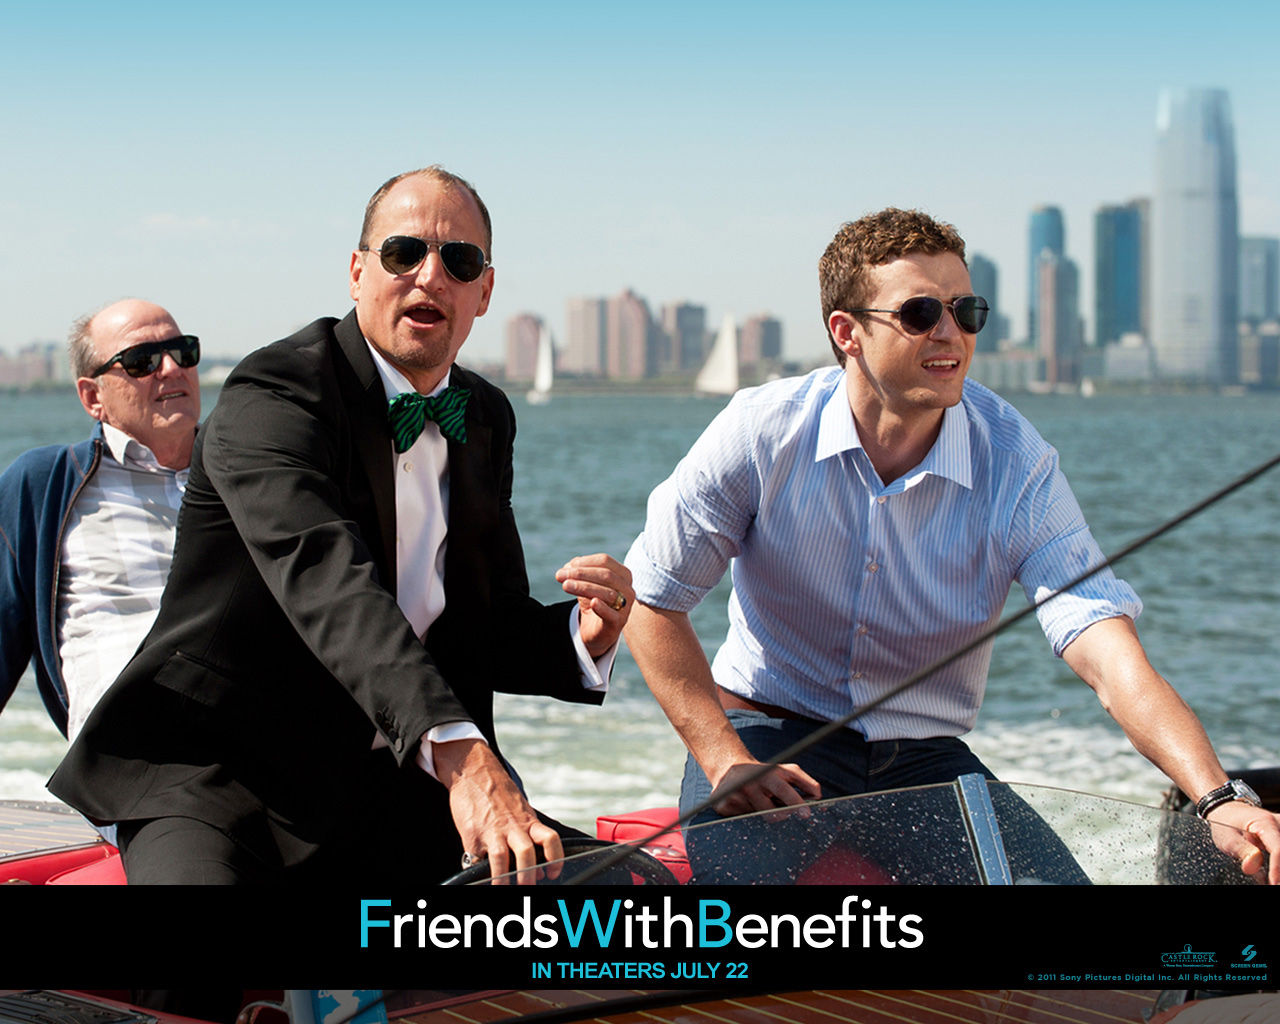 http://3.bp.blogspot.com/-kBtJPjhFYQk/TjQ_evVilYI/AAAAAAAAB80/Gtubq-h27FI/s1600/Woody_Harrelson_in_Friends_with_Benefits_Wallpaper_7_1024.jpg